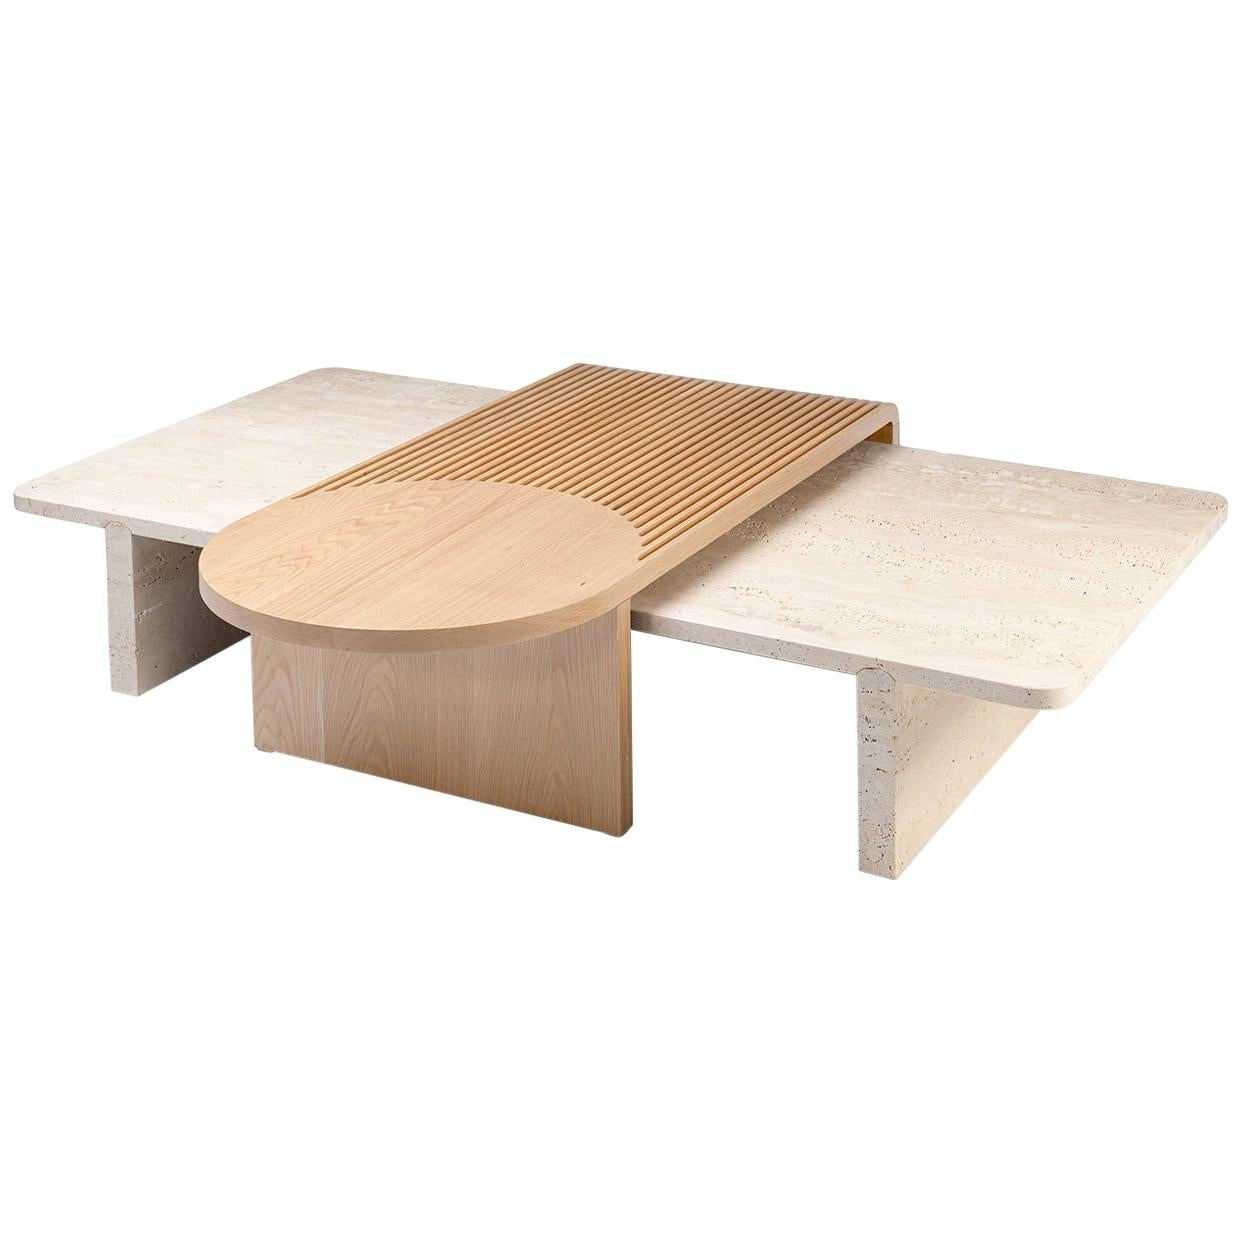 Coffee Table in Natural Travertine and Natural Oak Stick and Stone